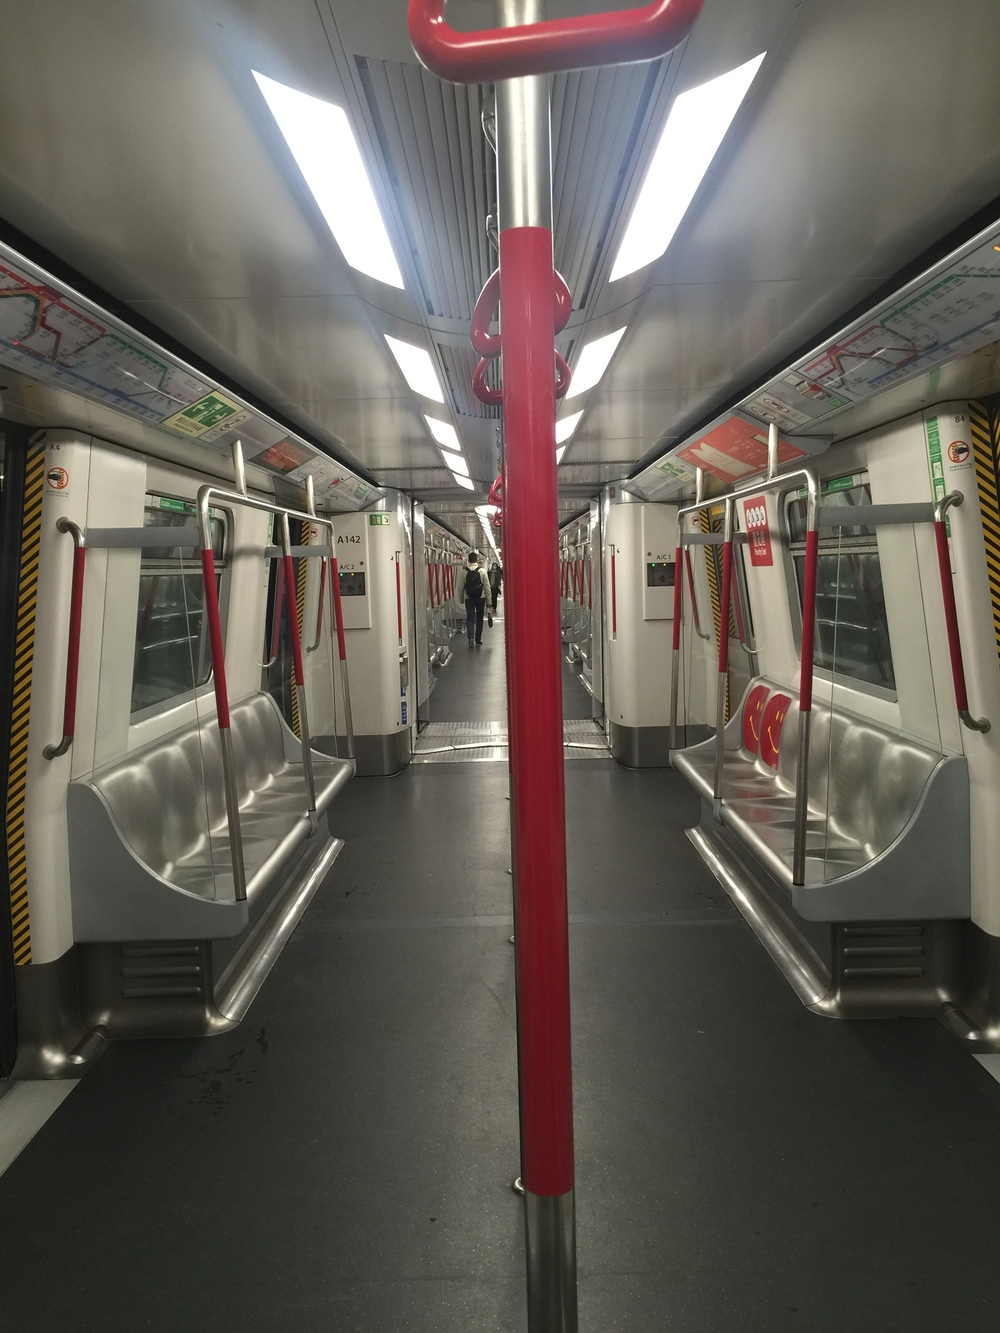 Hong Kong's MTR: Reliable, efficient, clean and quiet. Take notes NYC!